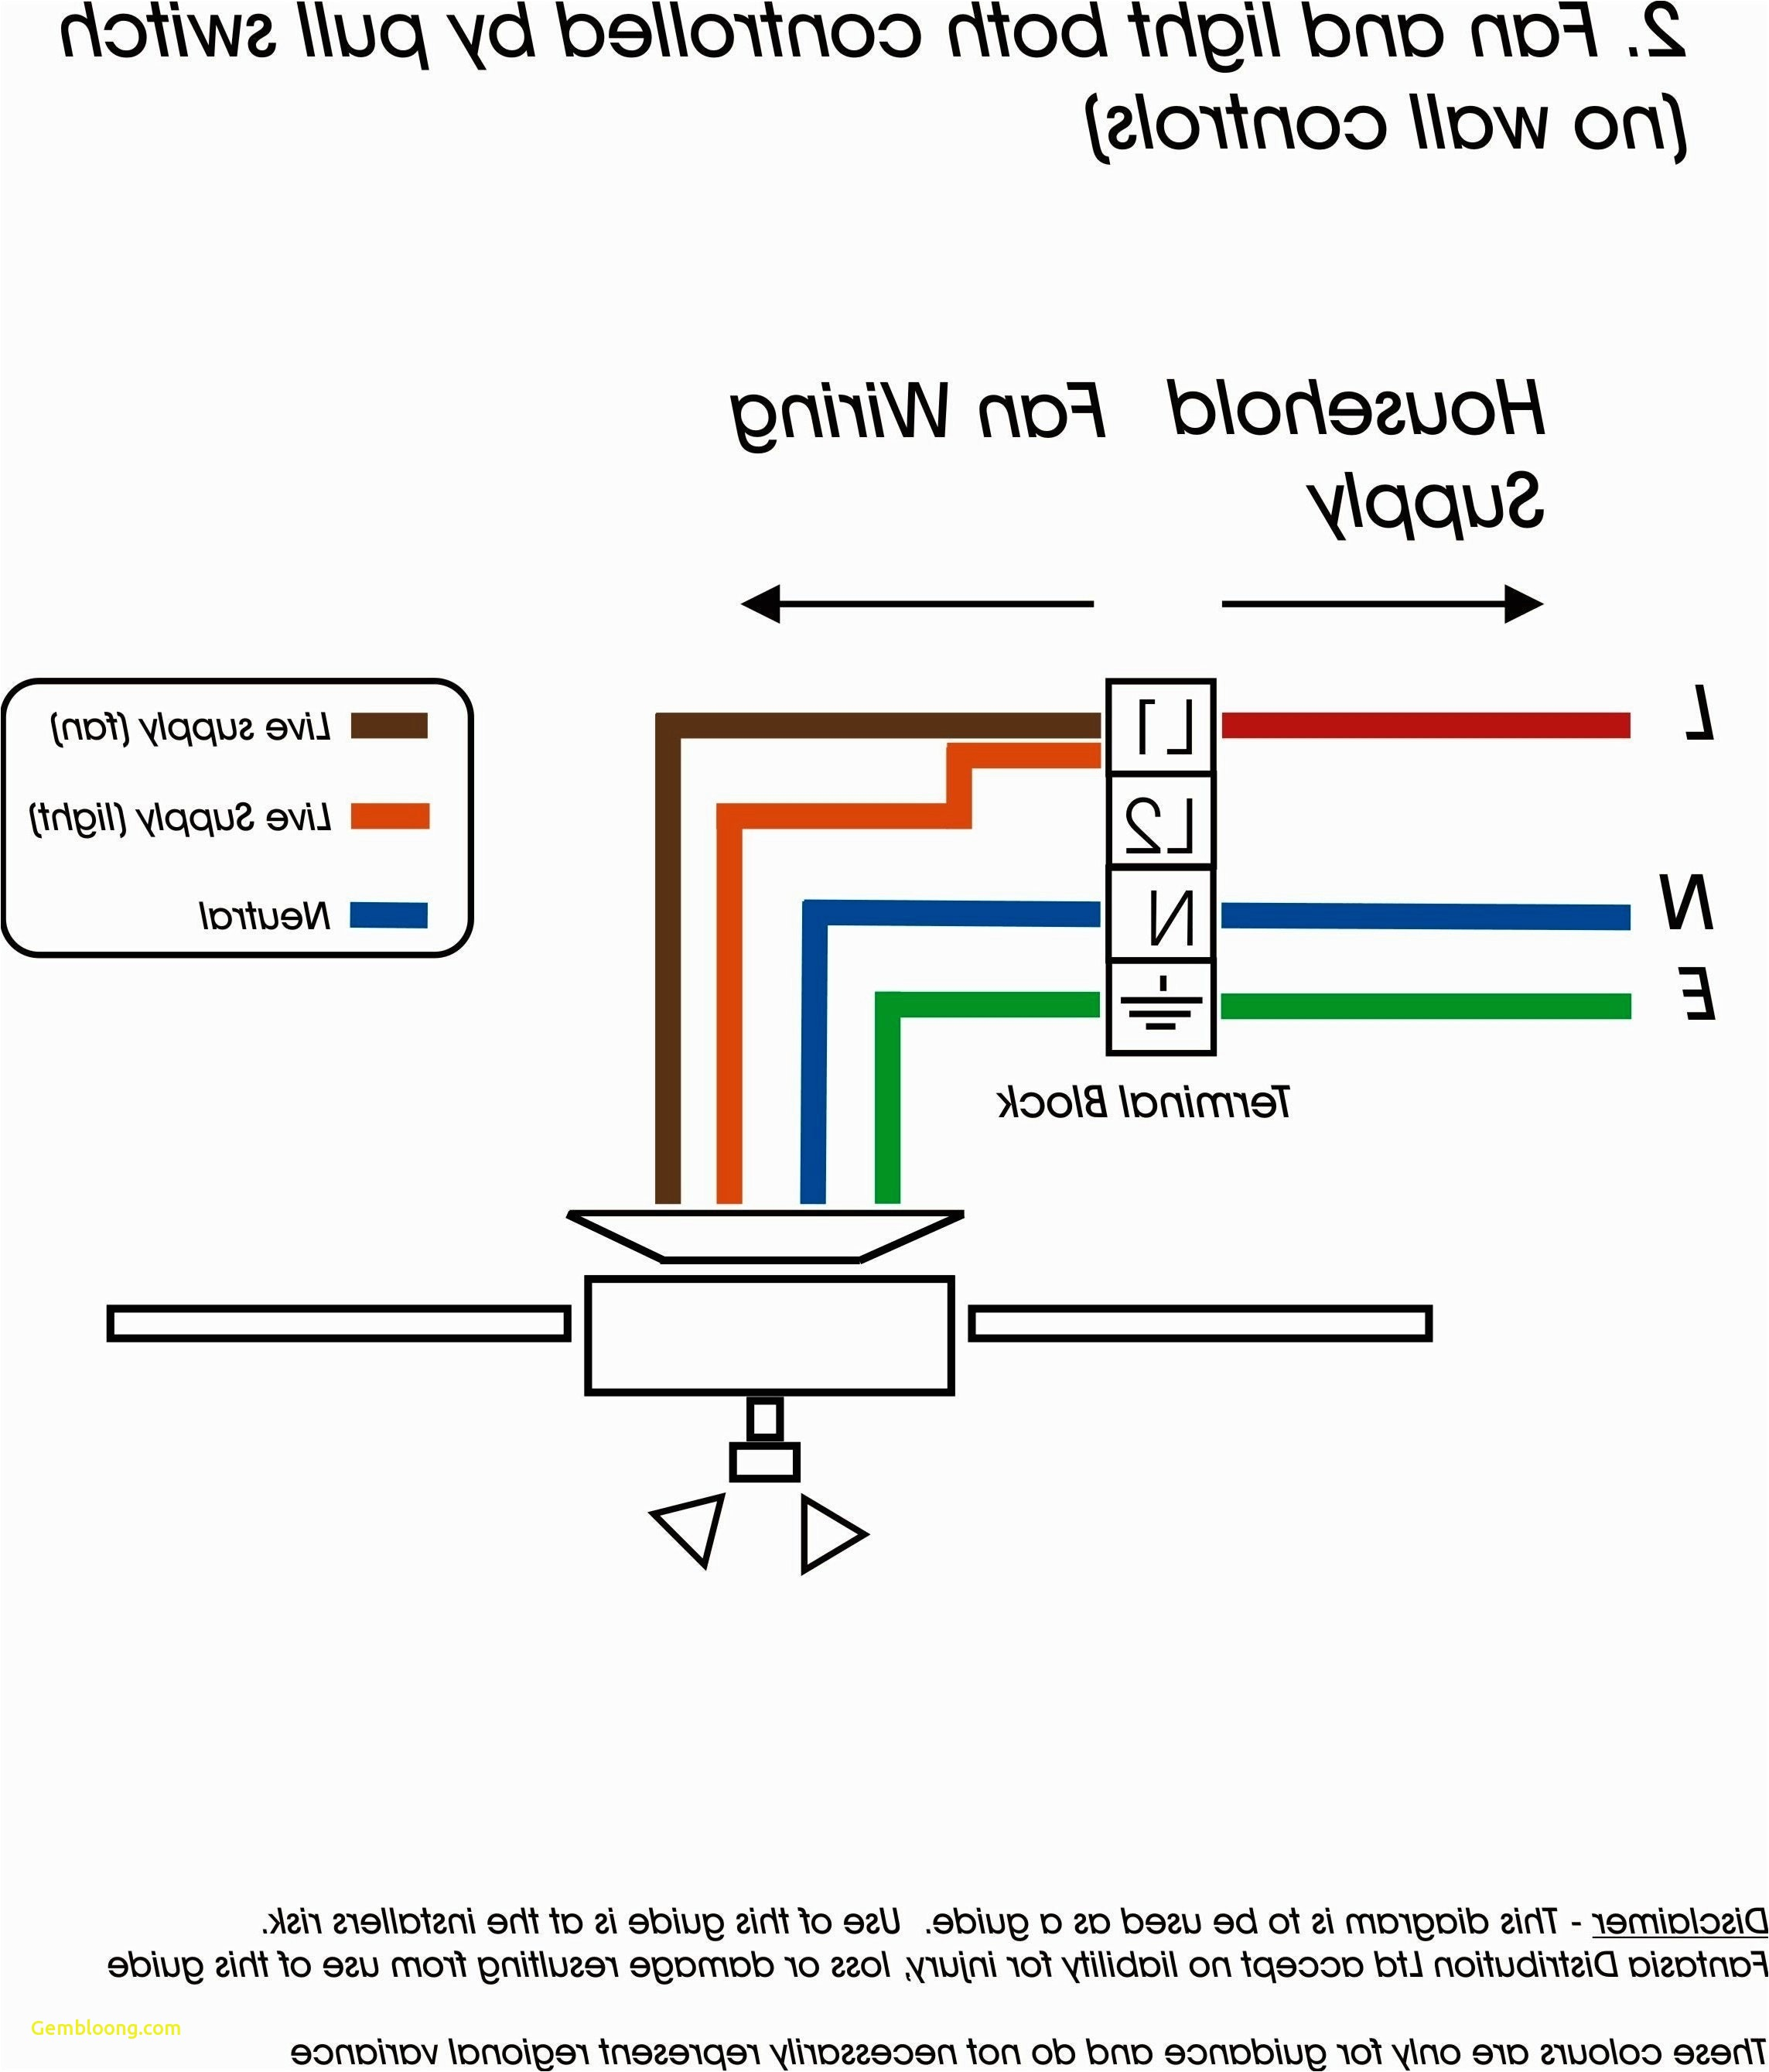 quorum ceiling fan wiring diagram use wiring diagram crest ceiling fan wiring diagram